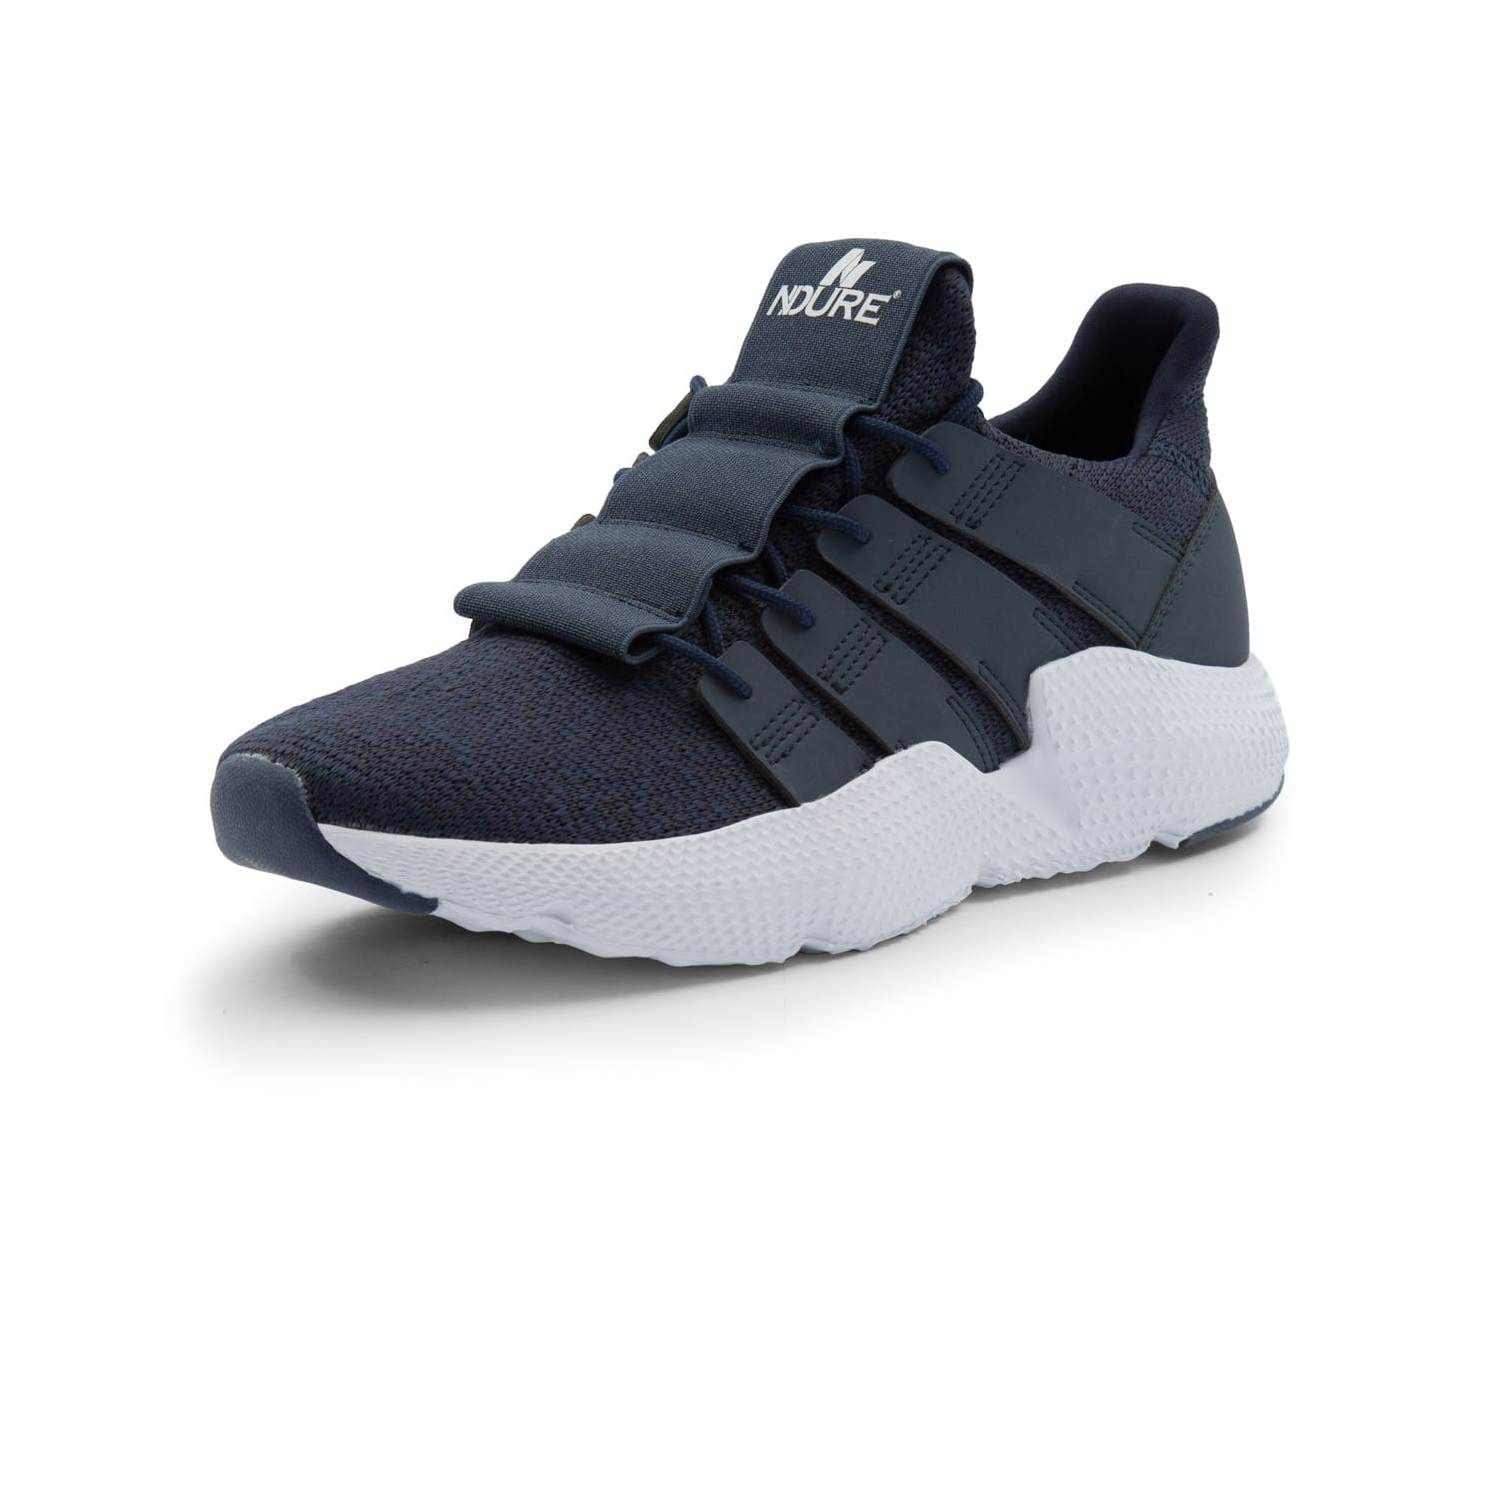 Sports shoes for Men in Pakistan like a Ca, Nike, Service